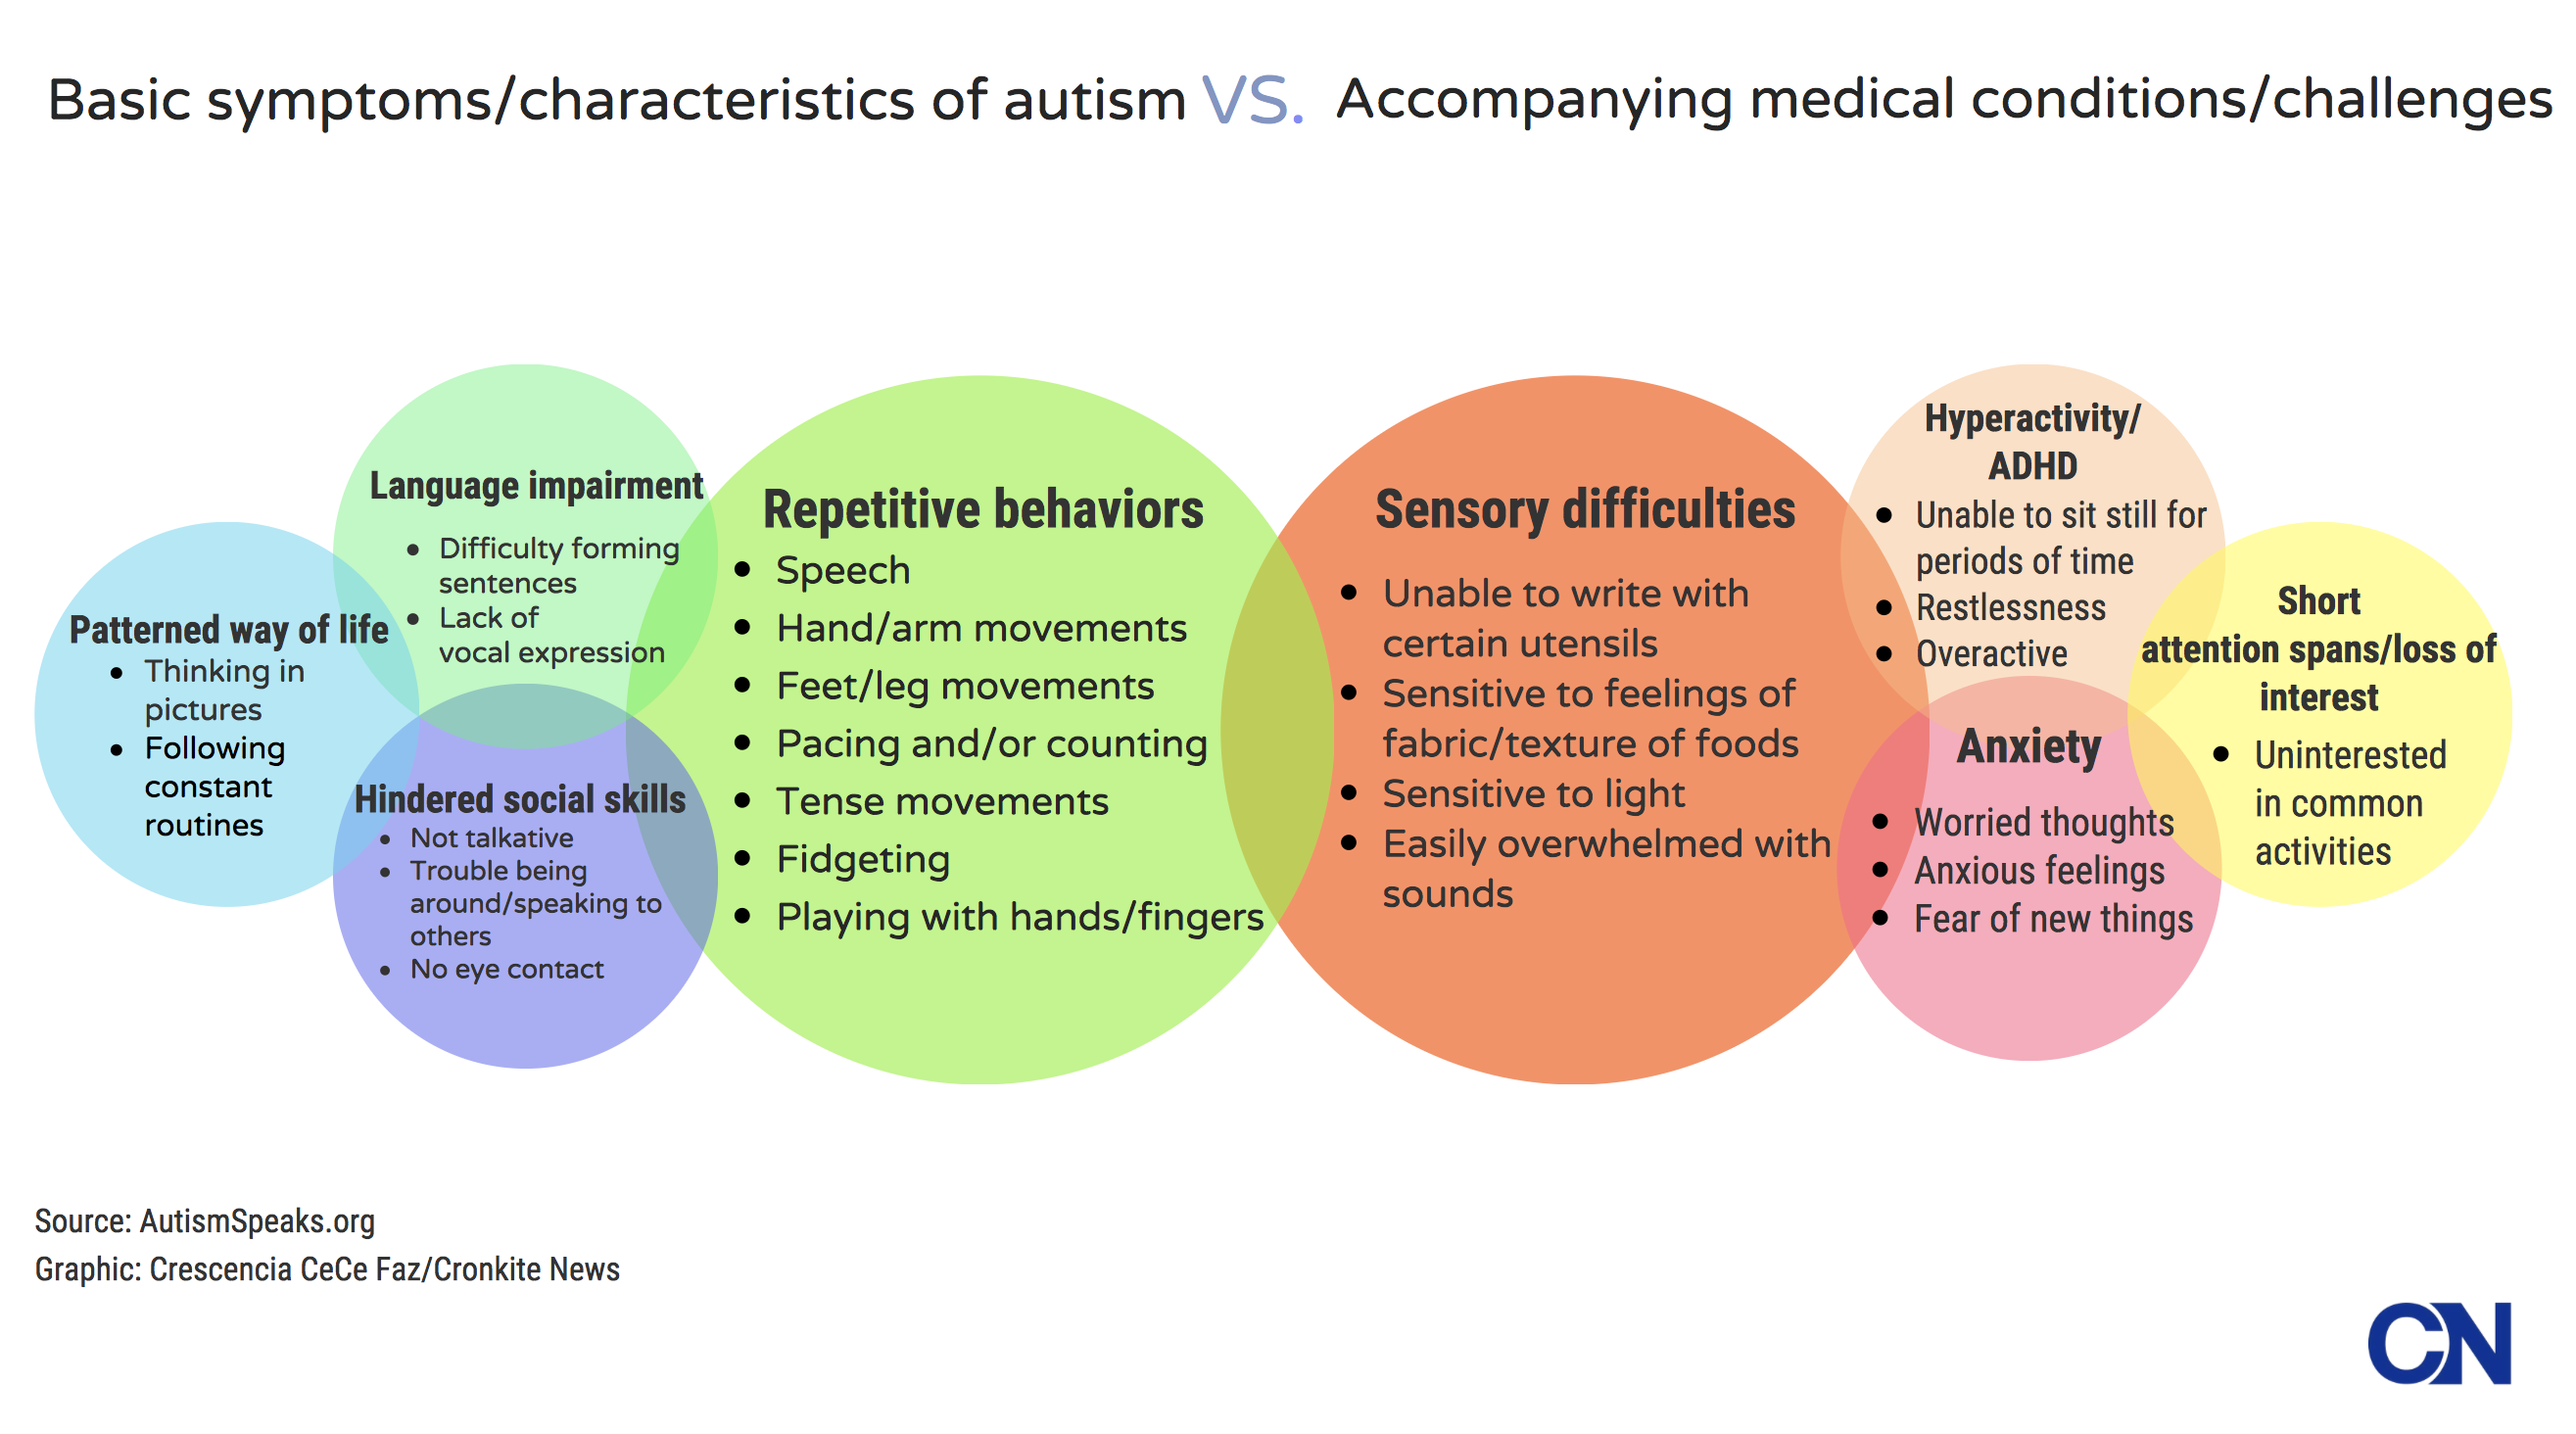 Adaptive education helps children diagnosed with autism